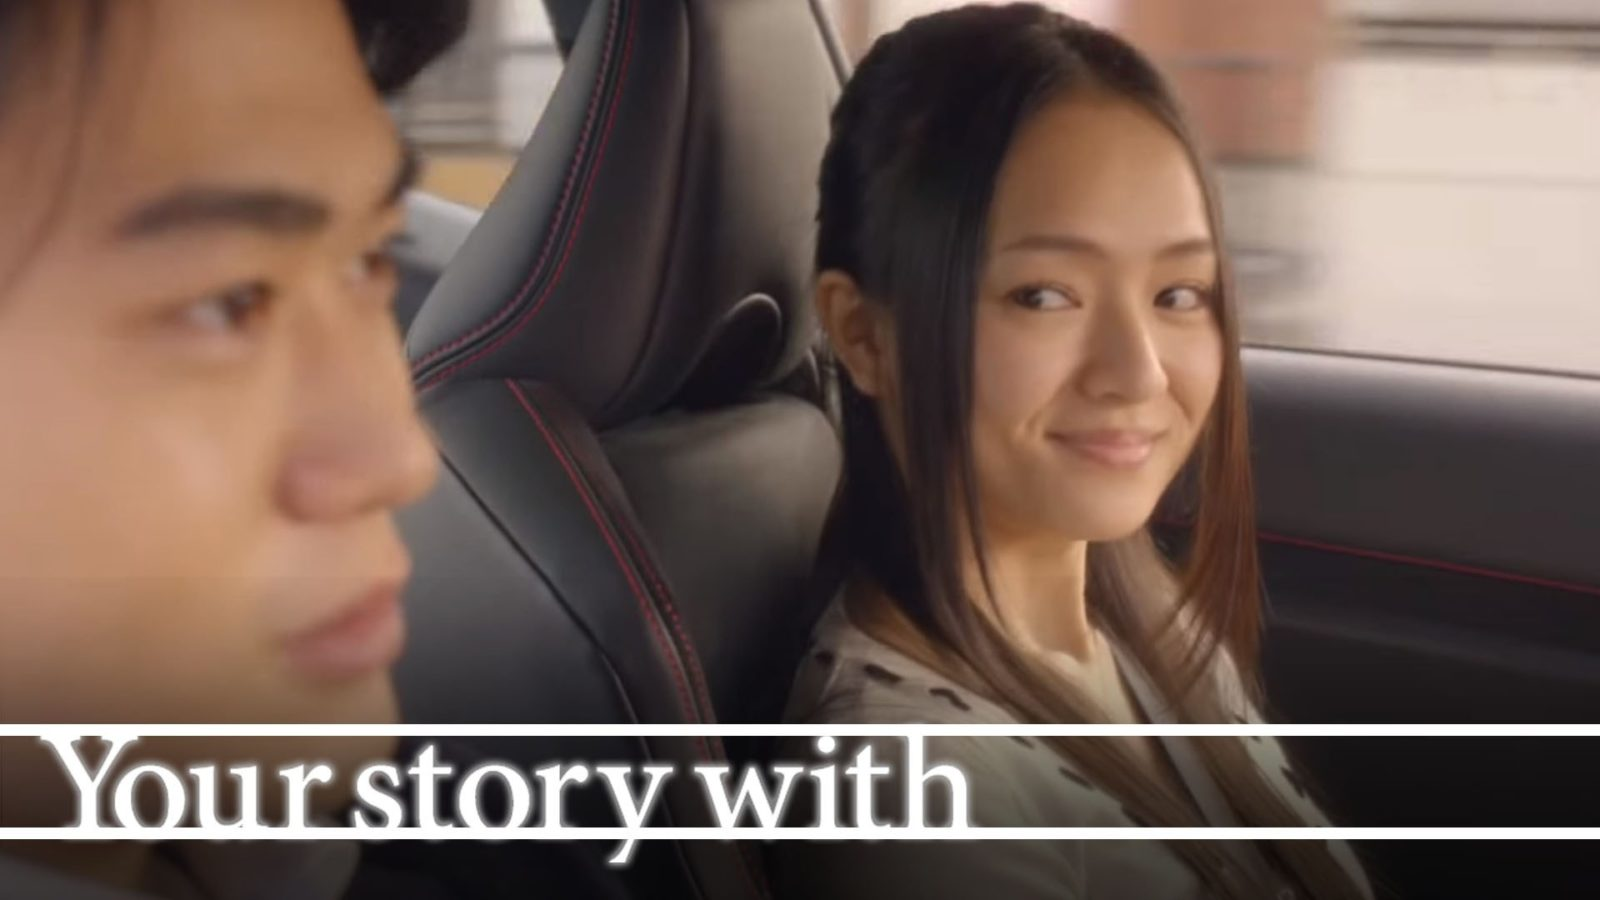 SUBARU『Your story withー遺伝子篇』